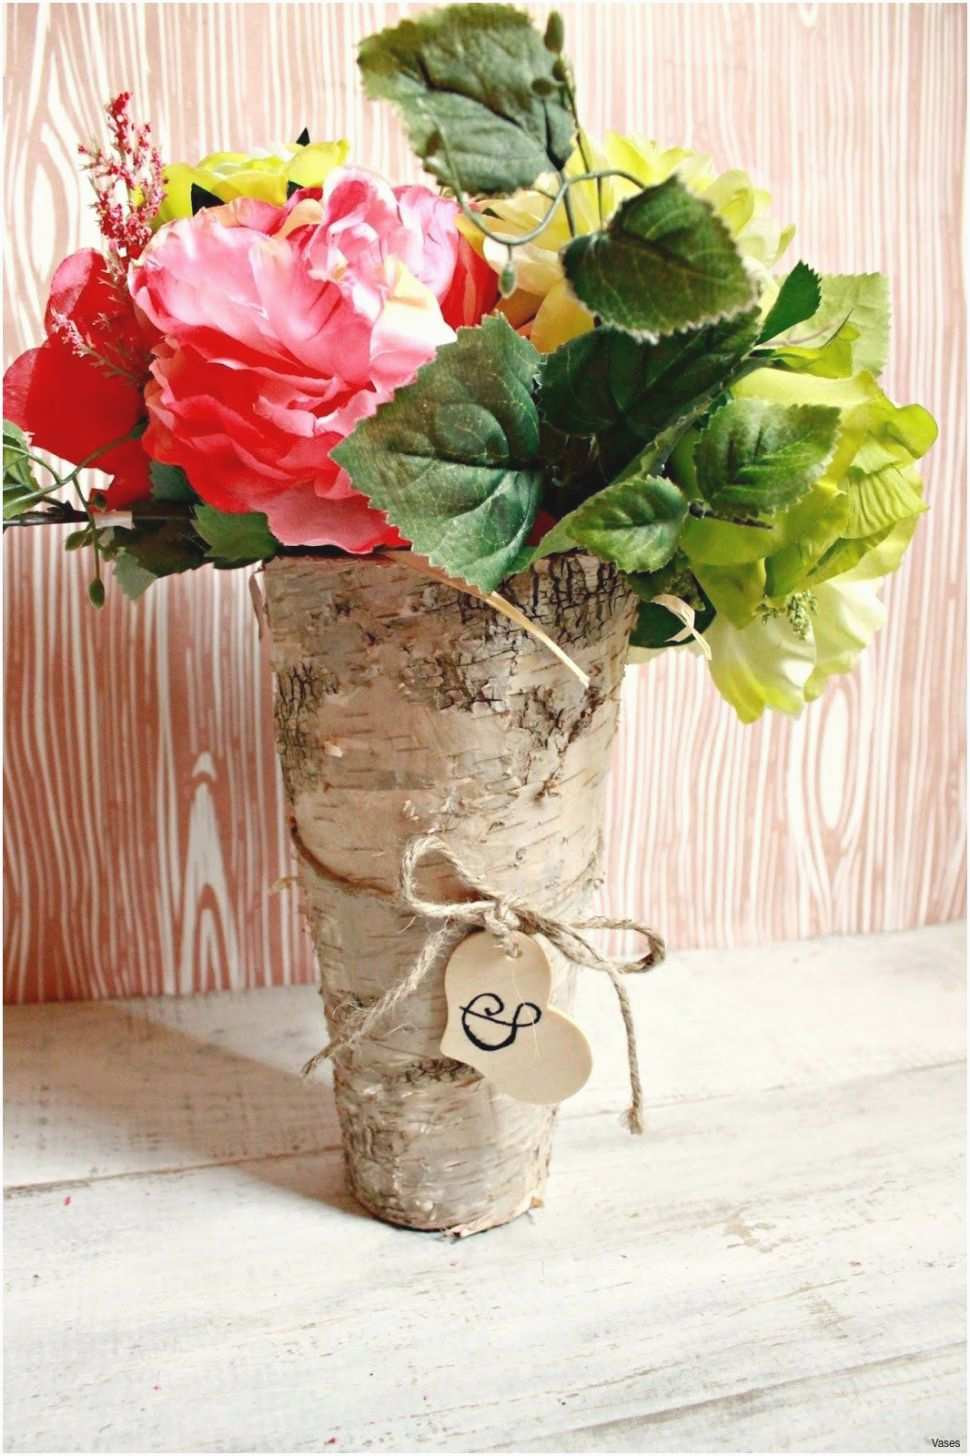 personalized vase flower delivery of fresh nice wedding gifts wedding bands for unique wedding gifts for friends remarkable wooden wedding flowers h vases diy wood vase i 0d